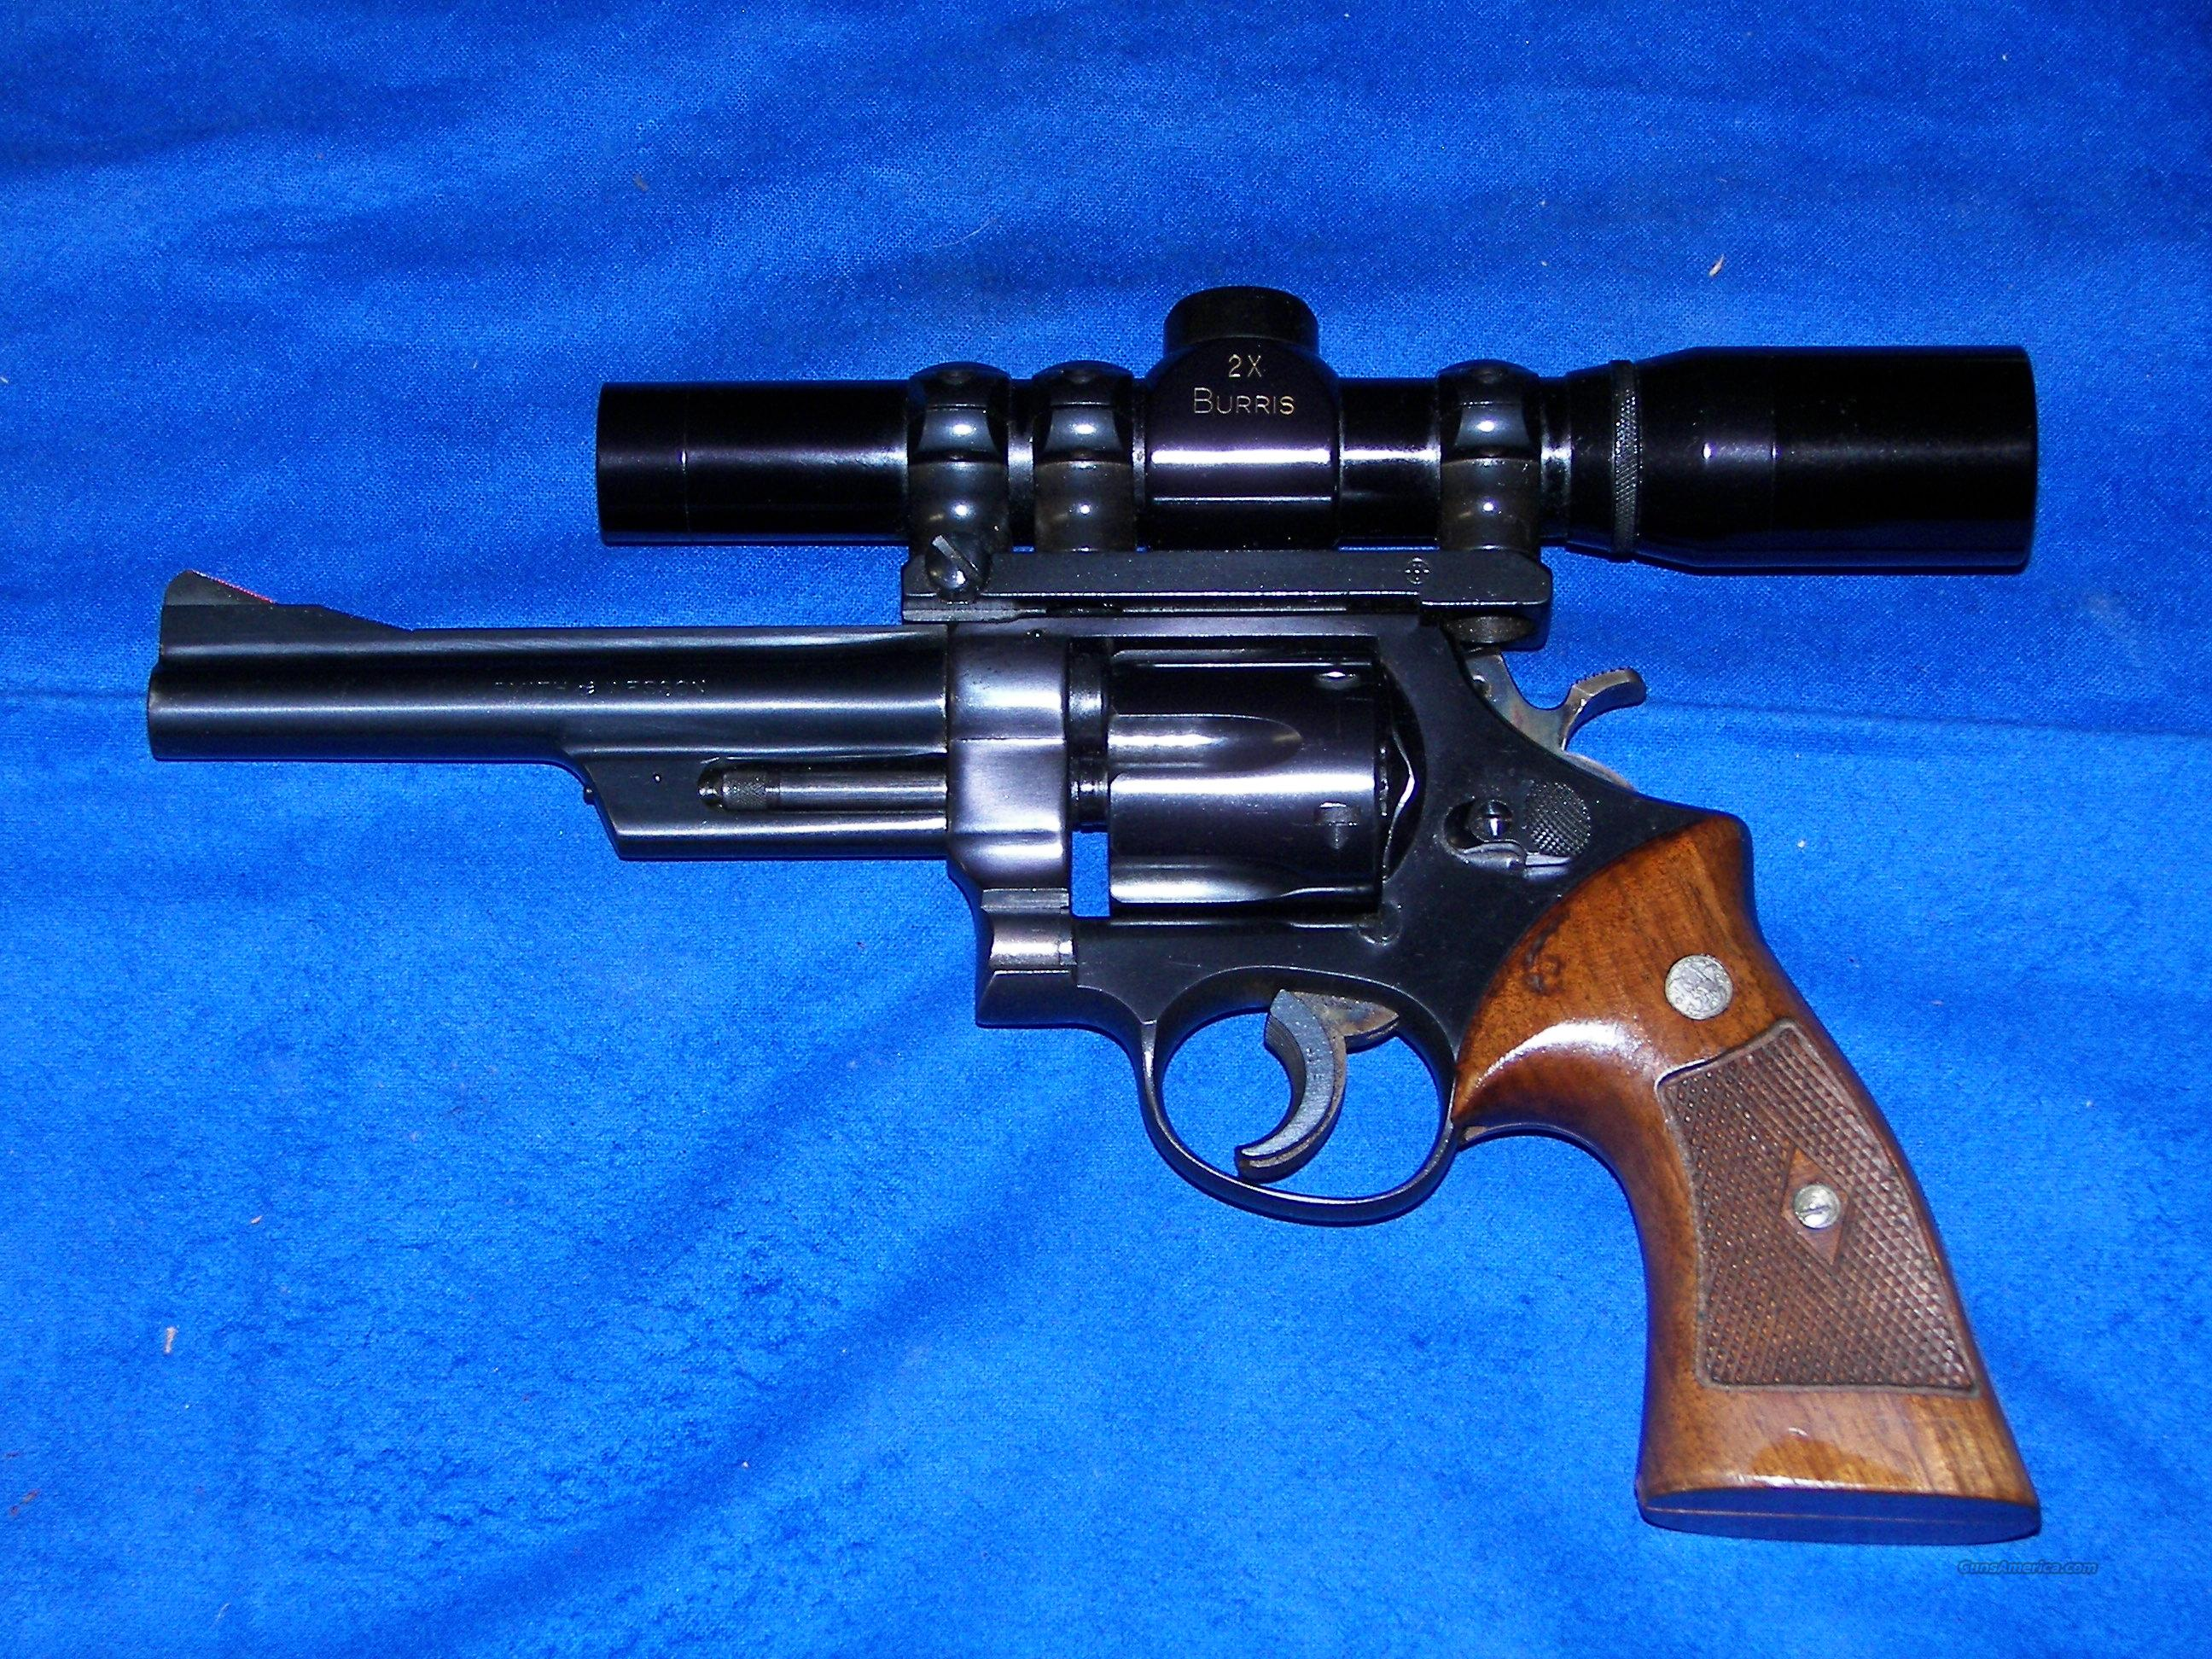 S & W MODEL 28 -2 .357 MAGNUM W/ BURRIS SCOPE  Guns > Pistols > Smith & Wesson Revolvers > Full Frame Revolver